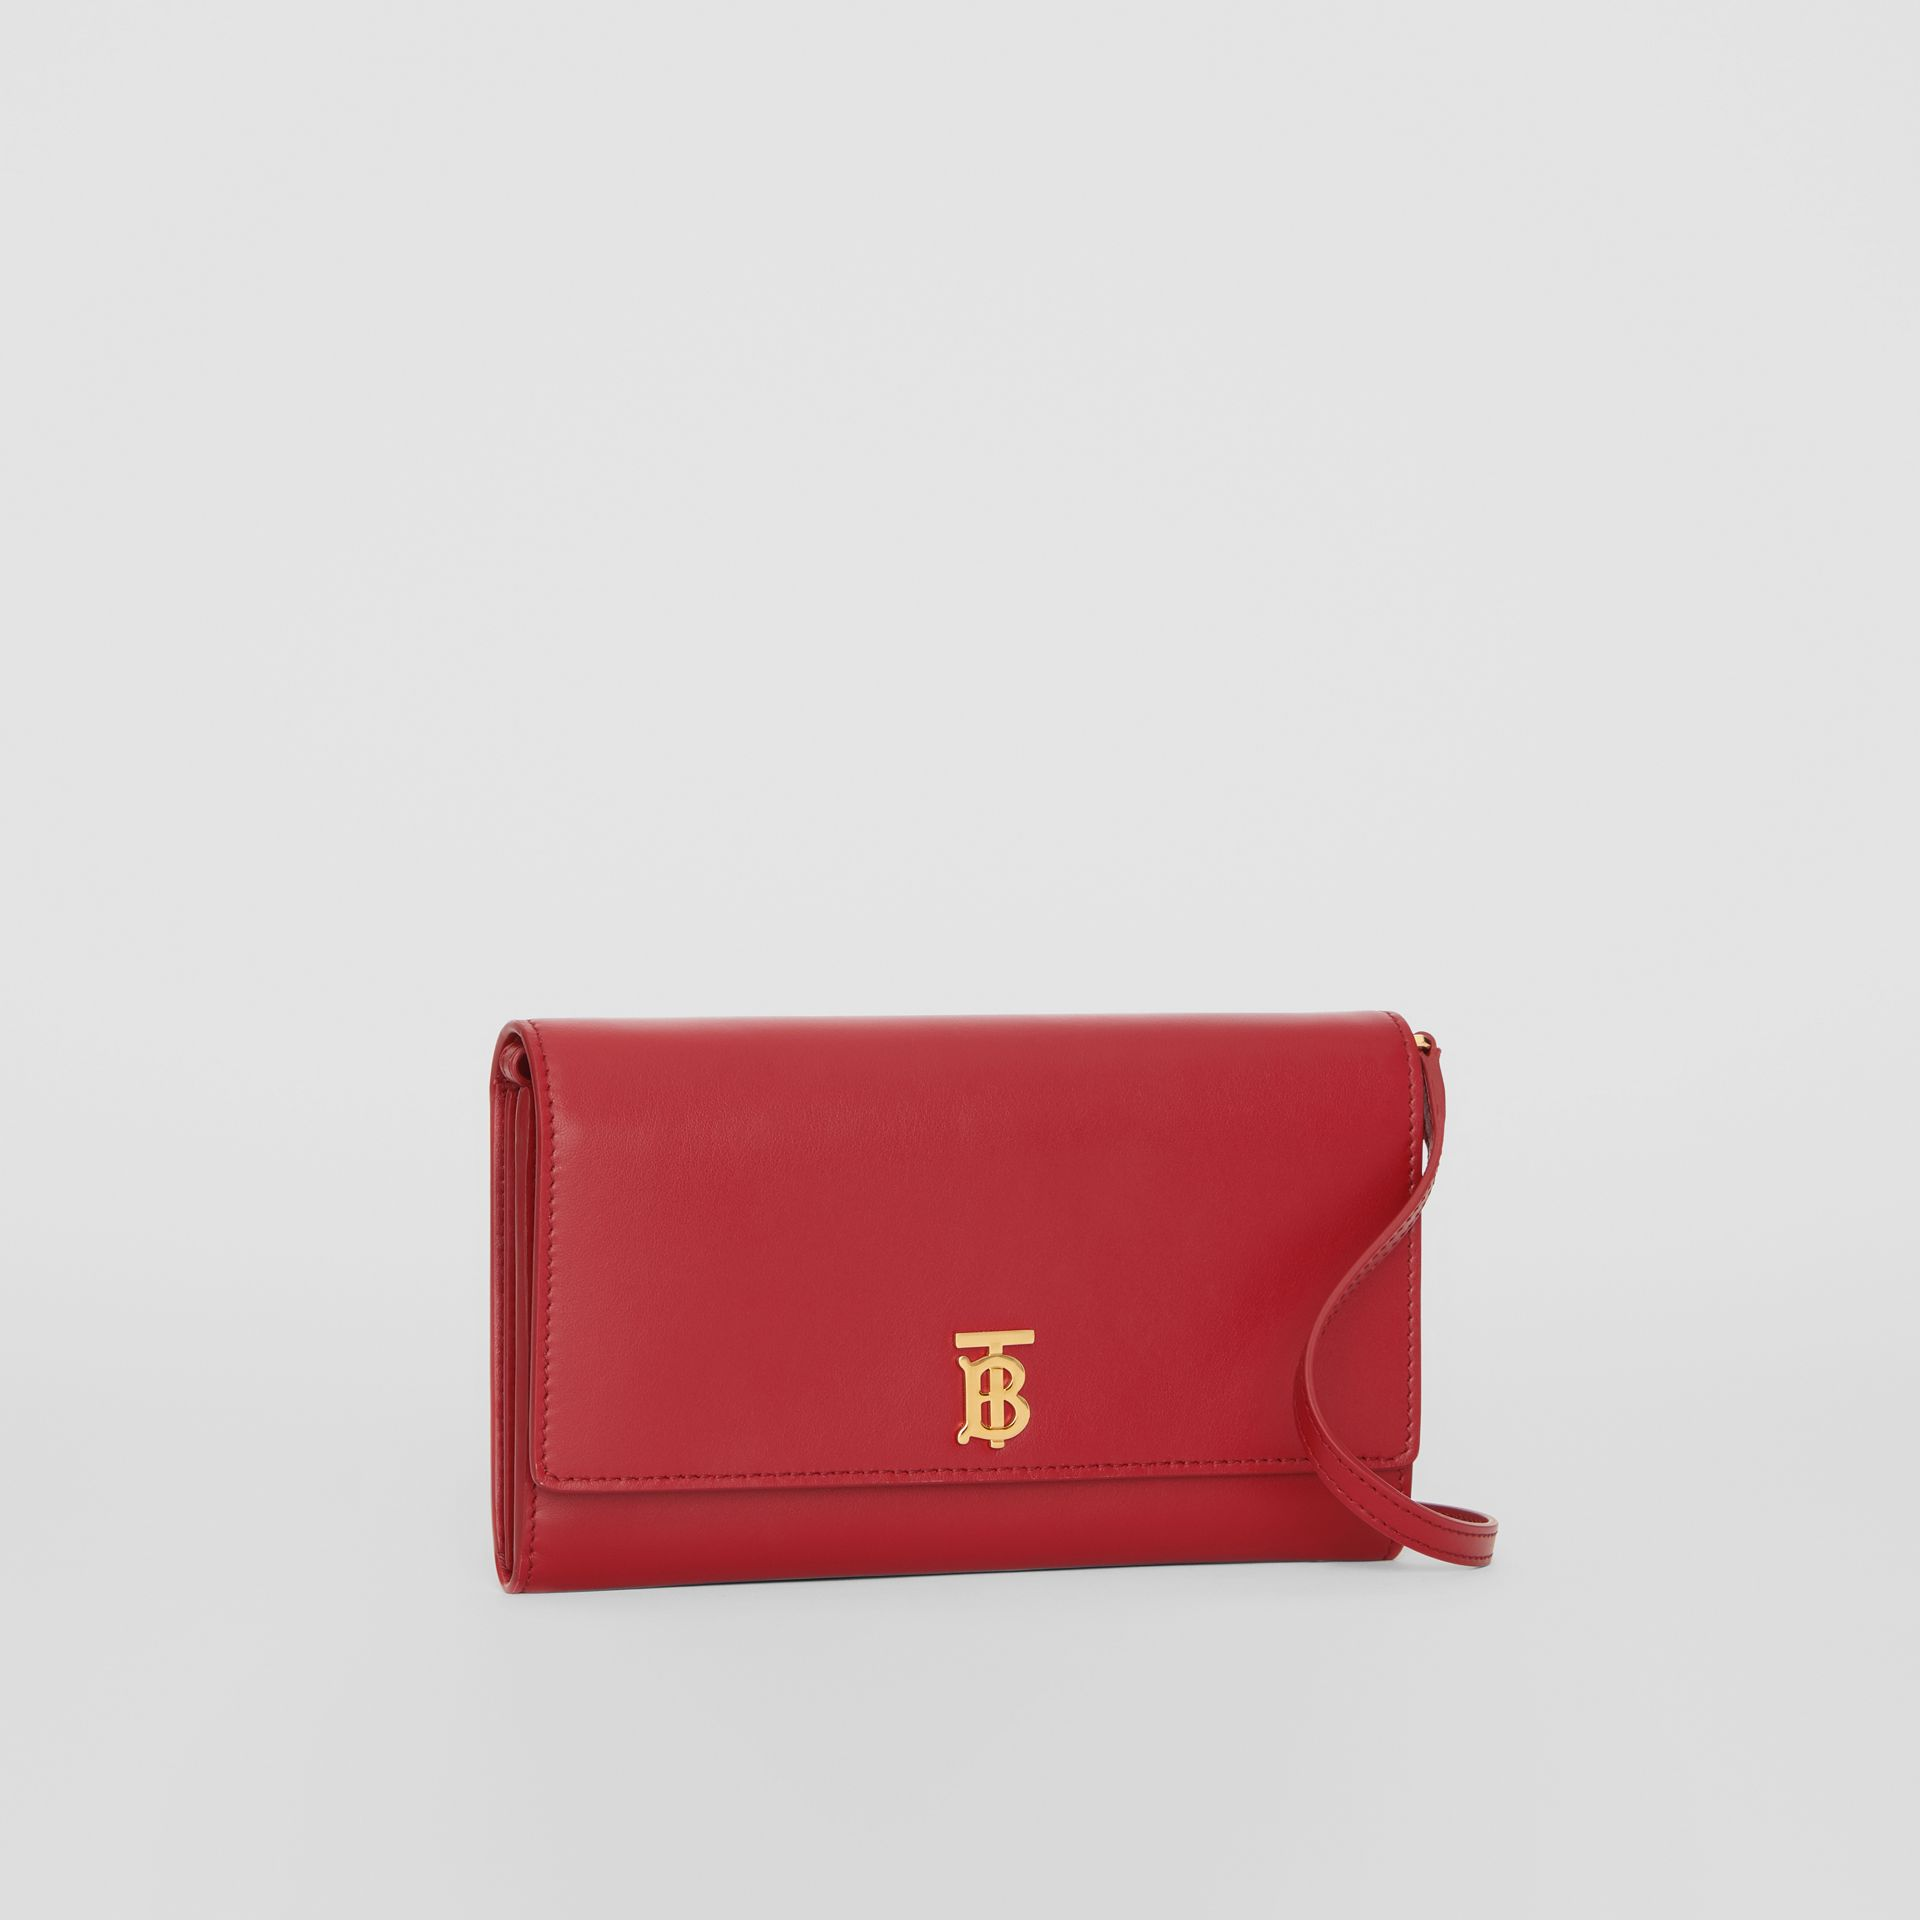 Monogram Motif Leather Wallet with Detachable Strap in Crimson - Women | Burberry United Kingdom - gallery image 6